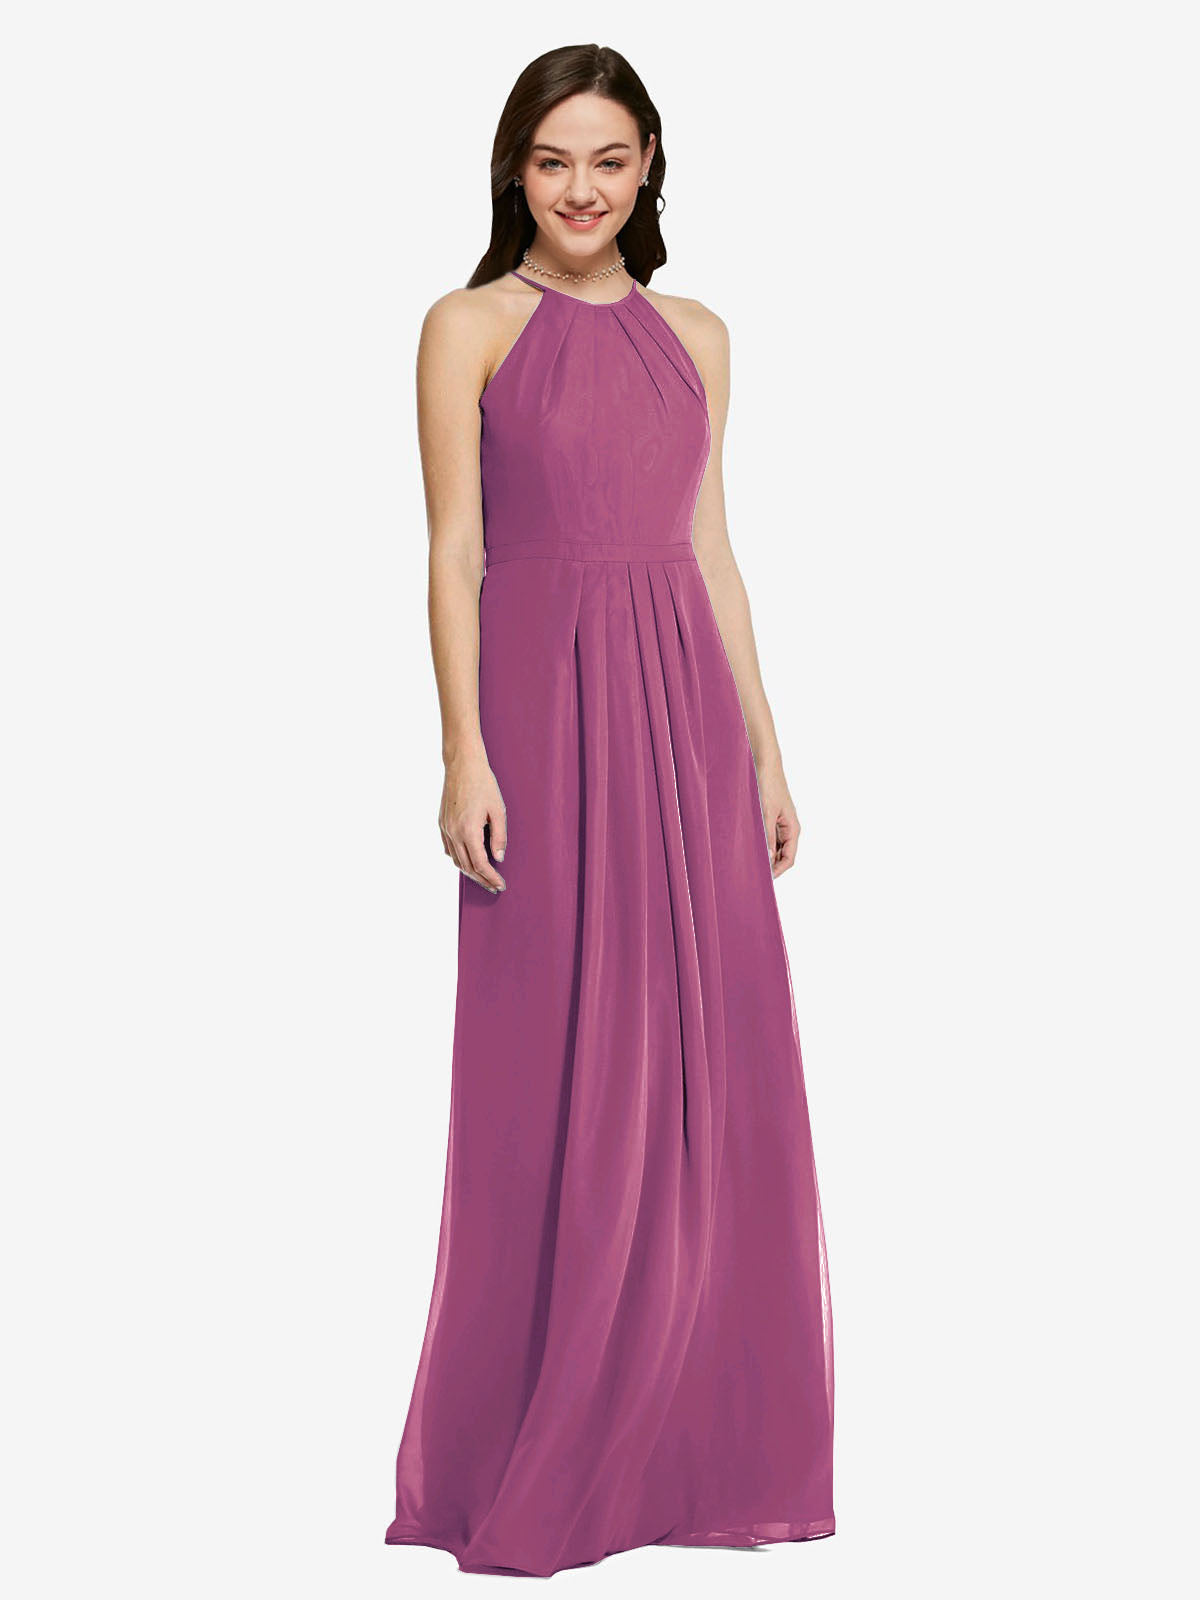 Long Sheath High Neck Halter Sleeveless Wild Berry Chiffon Bridesmaid Dress Koloti